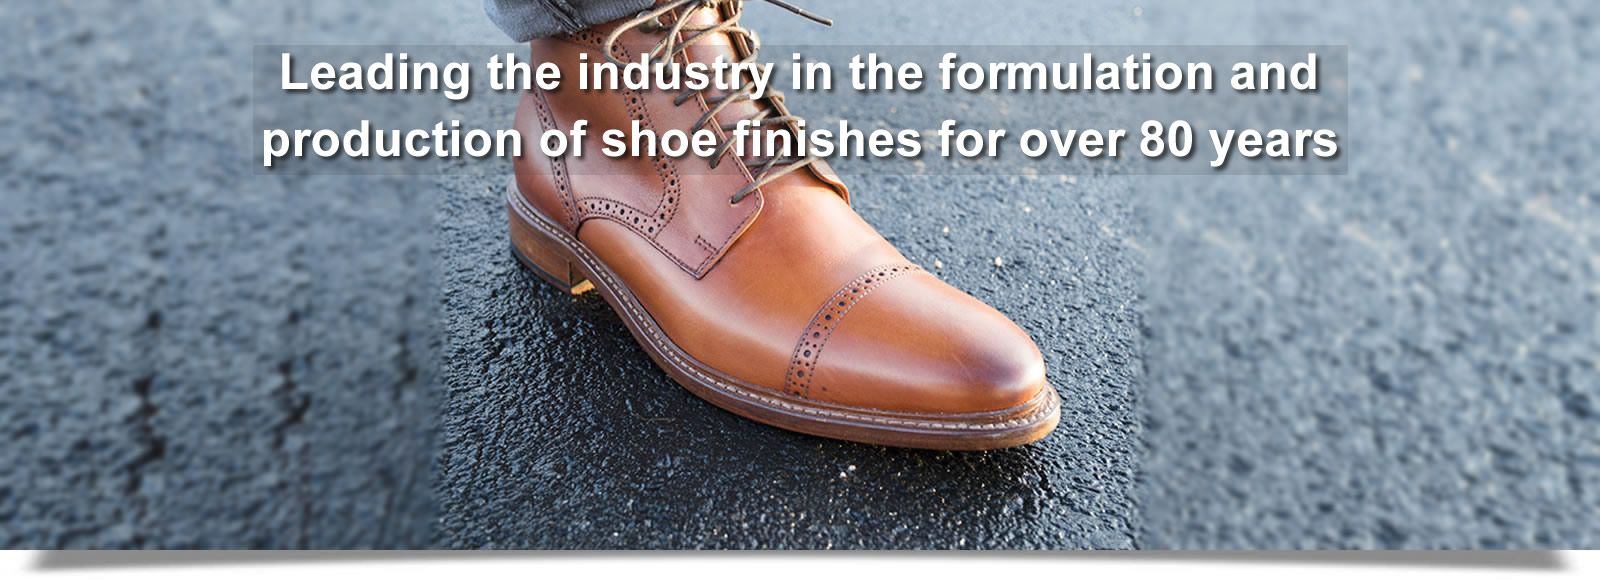 Prime Leather Finishes has been leading the industry in the formulation and production of shoe finishes for over 80 years